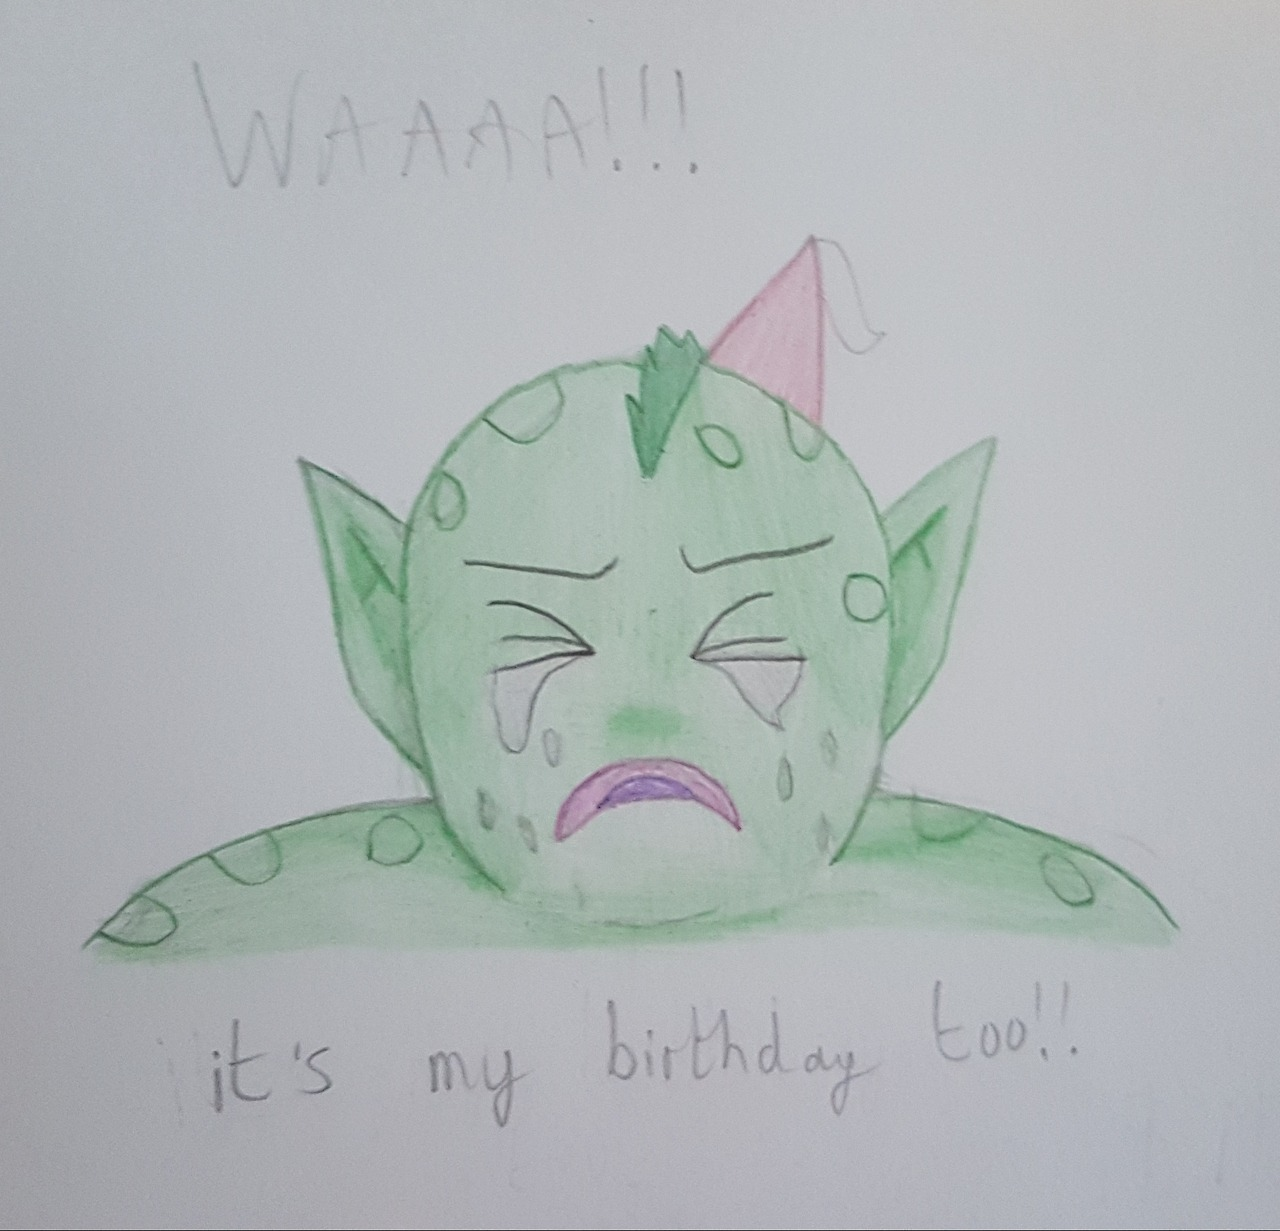 demoniclovedbz: